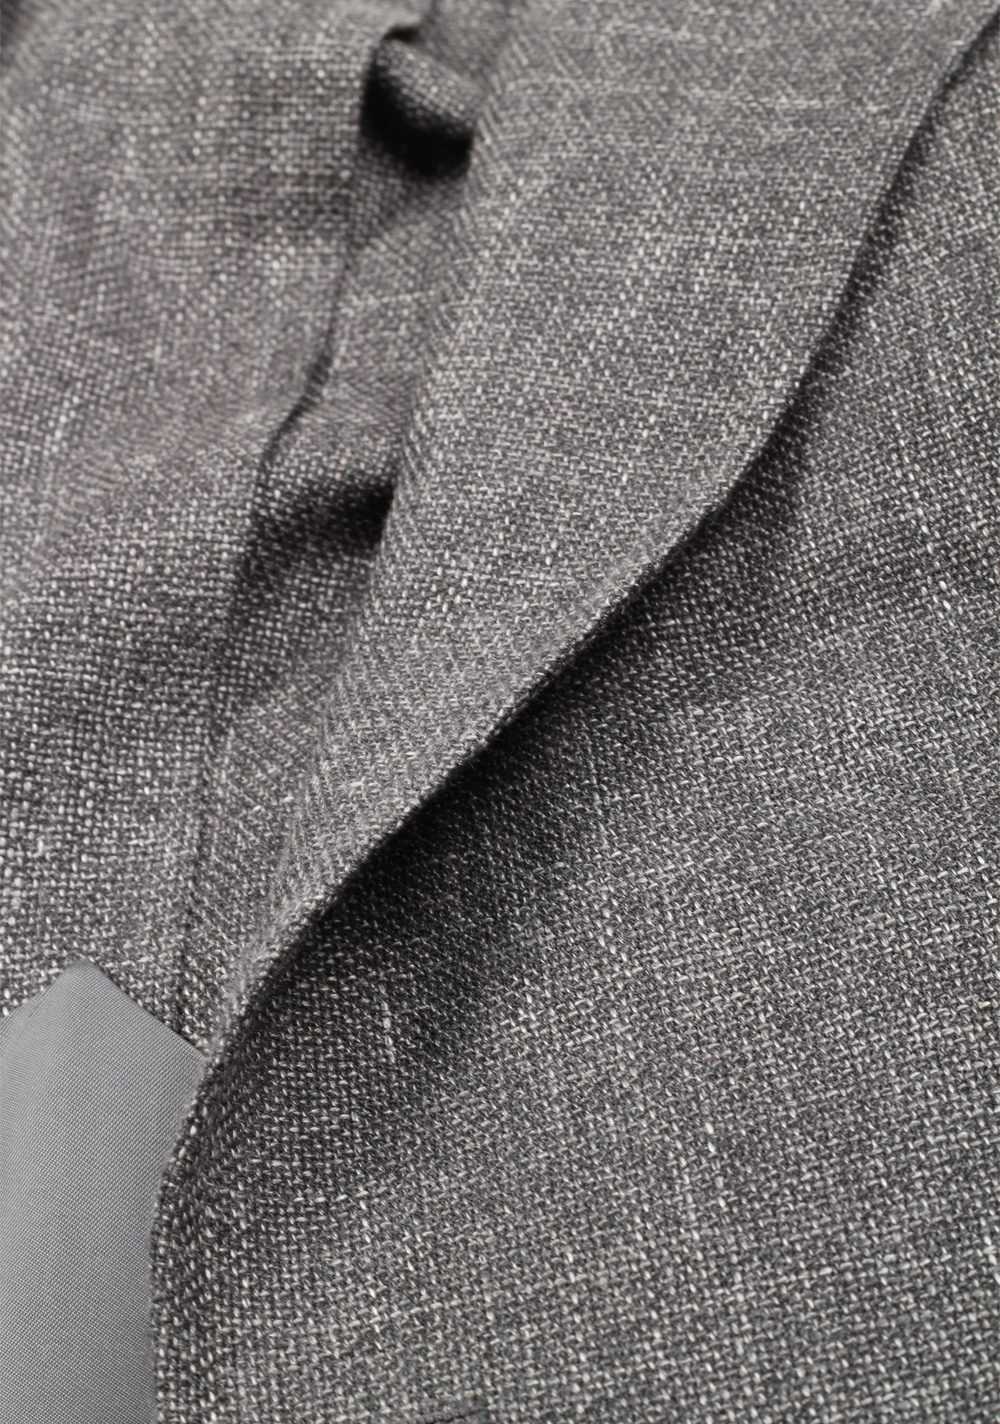 TOM FORD Shelton Gray Sport Coat Size 54 / 44R U.S. | Costume Limité